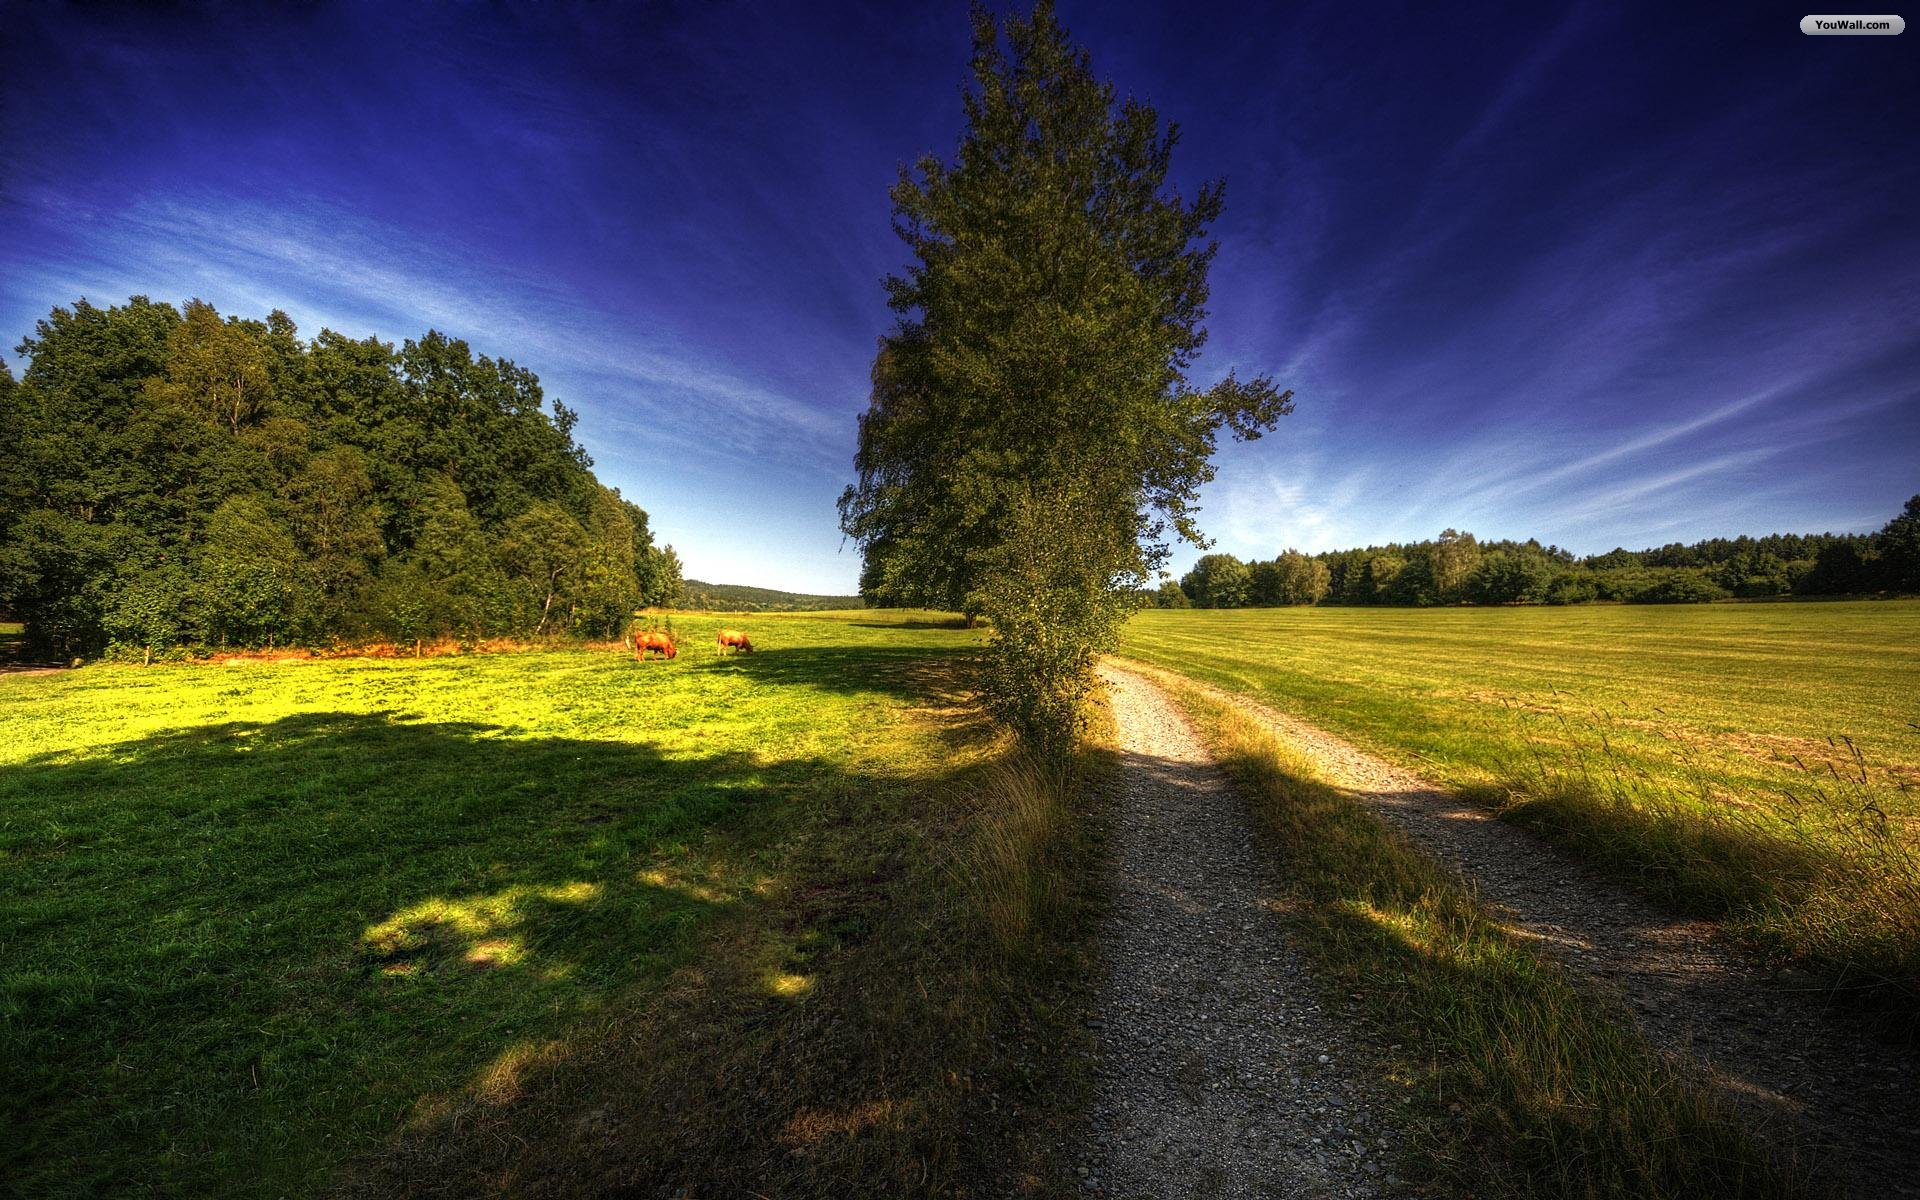 YouWall   Country Road Wallpaper   wallpaperwallpapersfree wallpaper 1920x1200